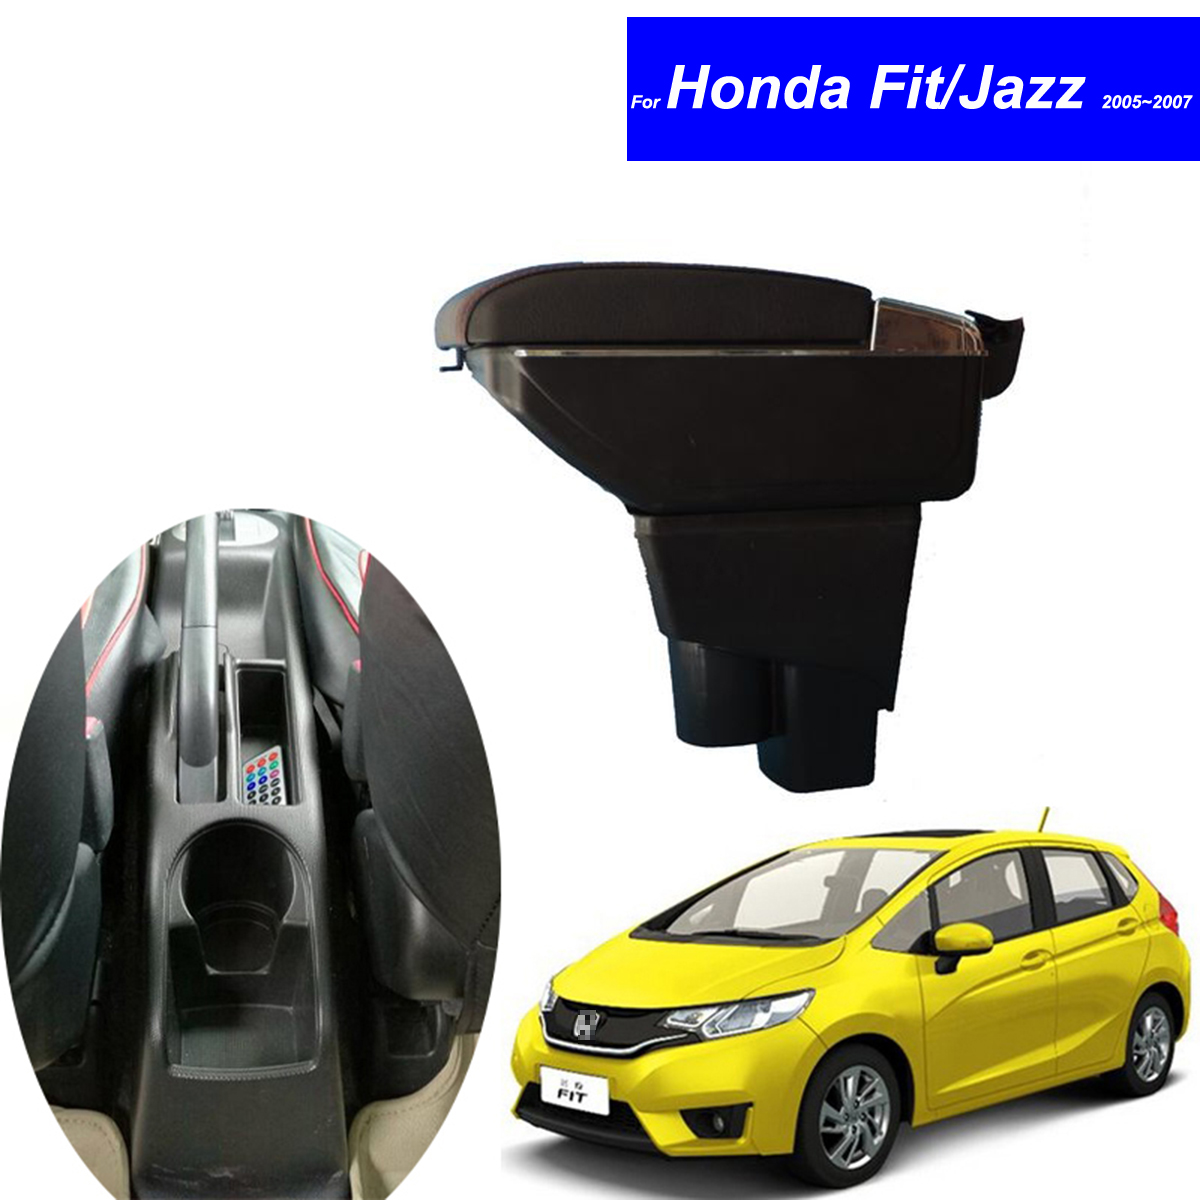 2013 honda fit reviews honda fit price photos and html. Black Bedroom Furniture Sets. Home Design Ideas